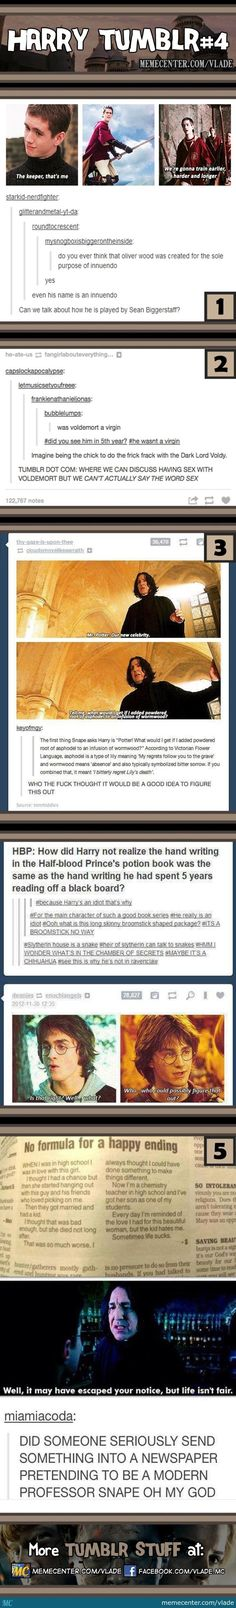 Harry Potter on tumblr